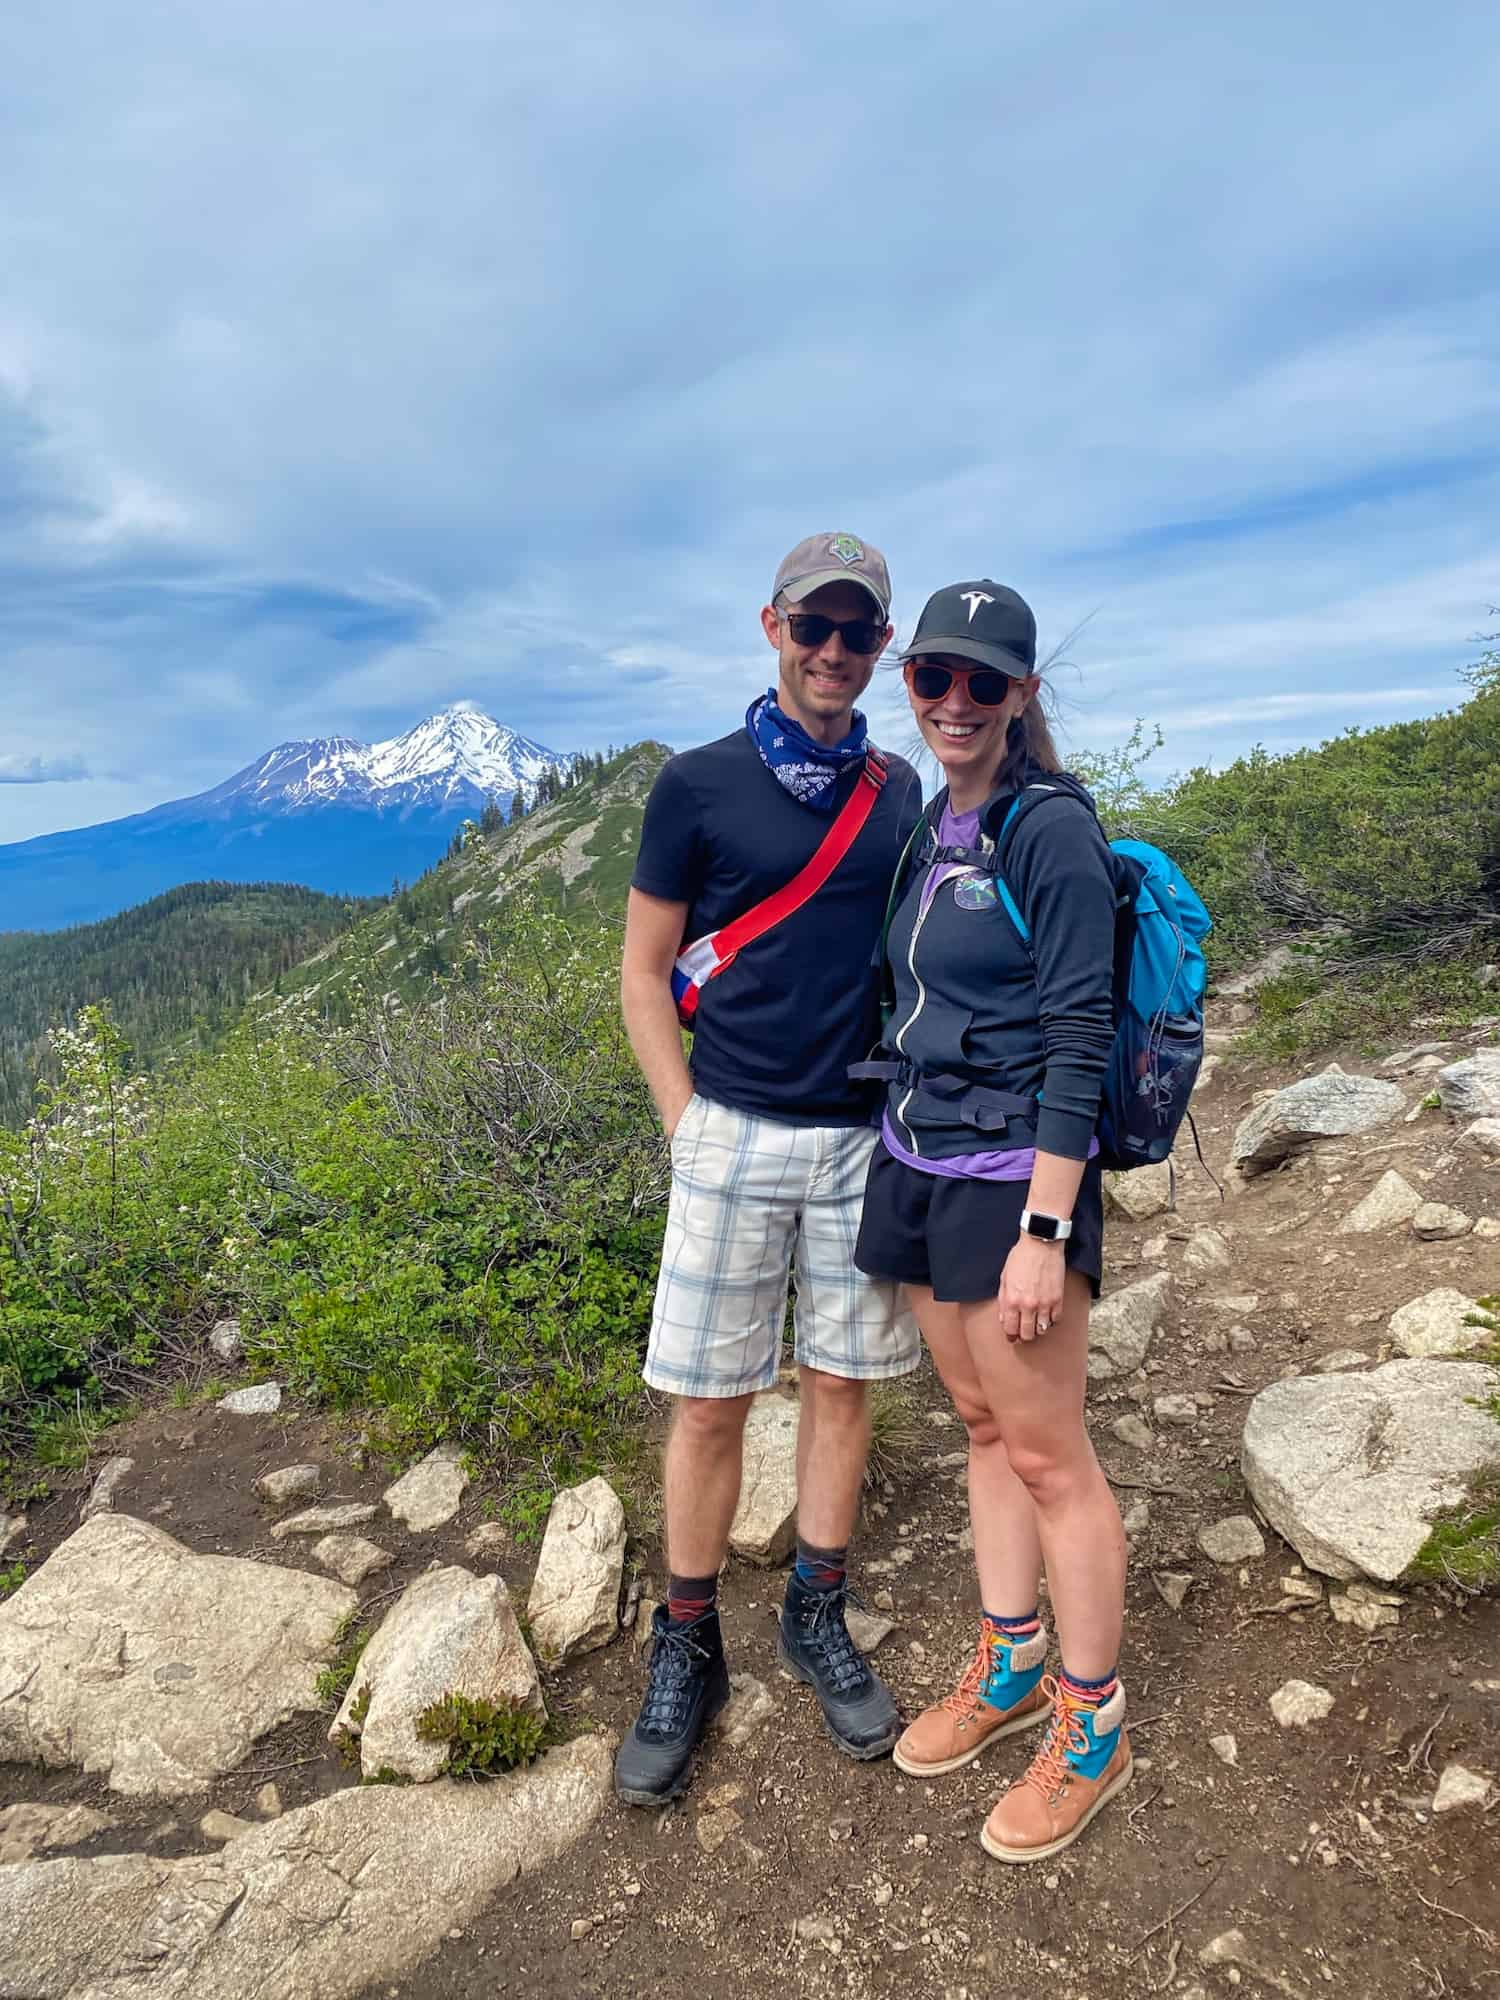 Mount Shasta Weekend - Heart Lake Hike